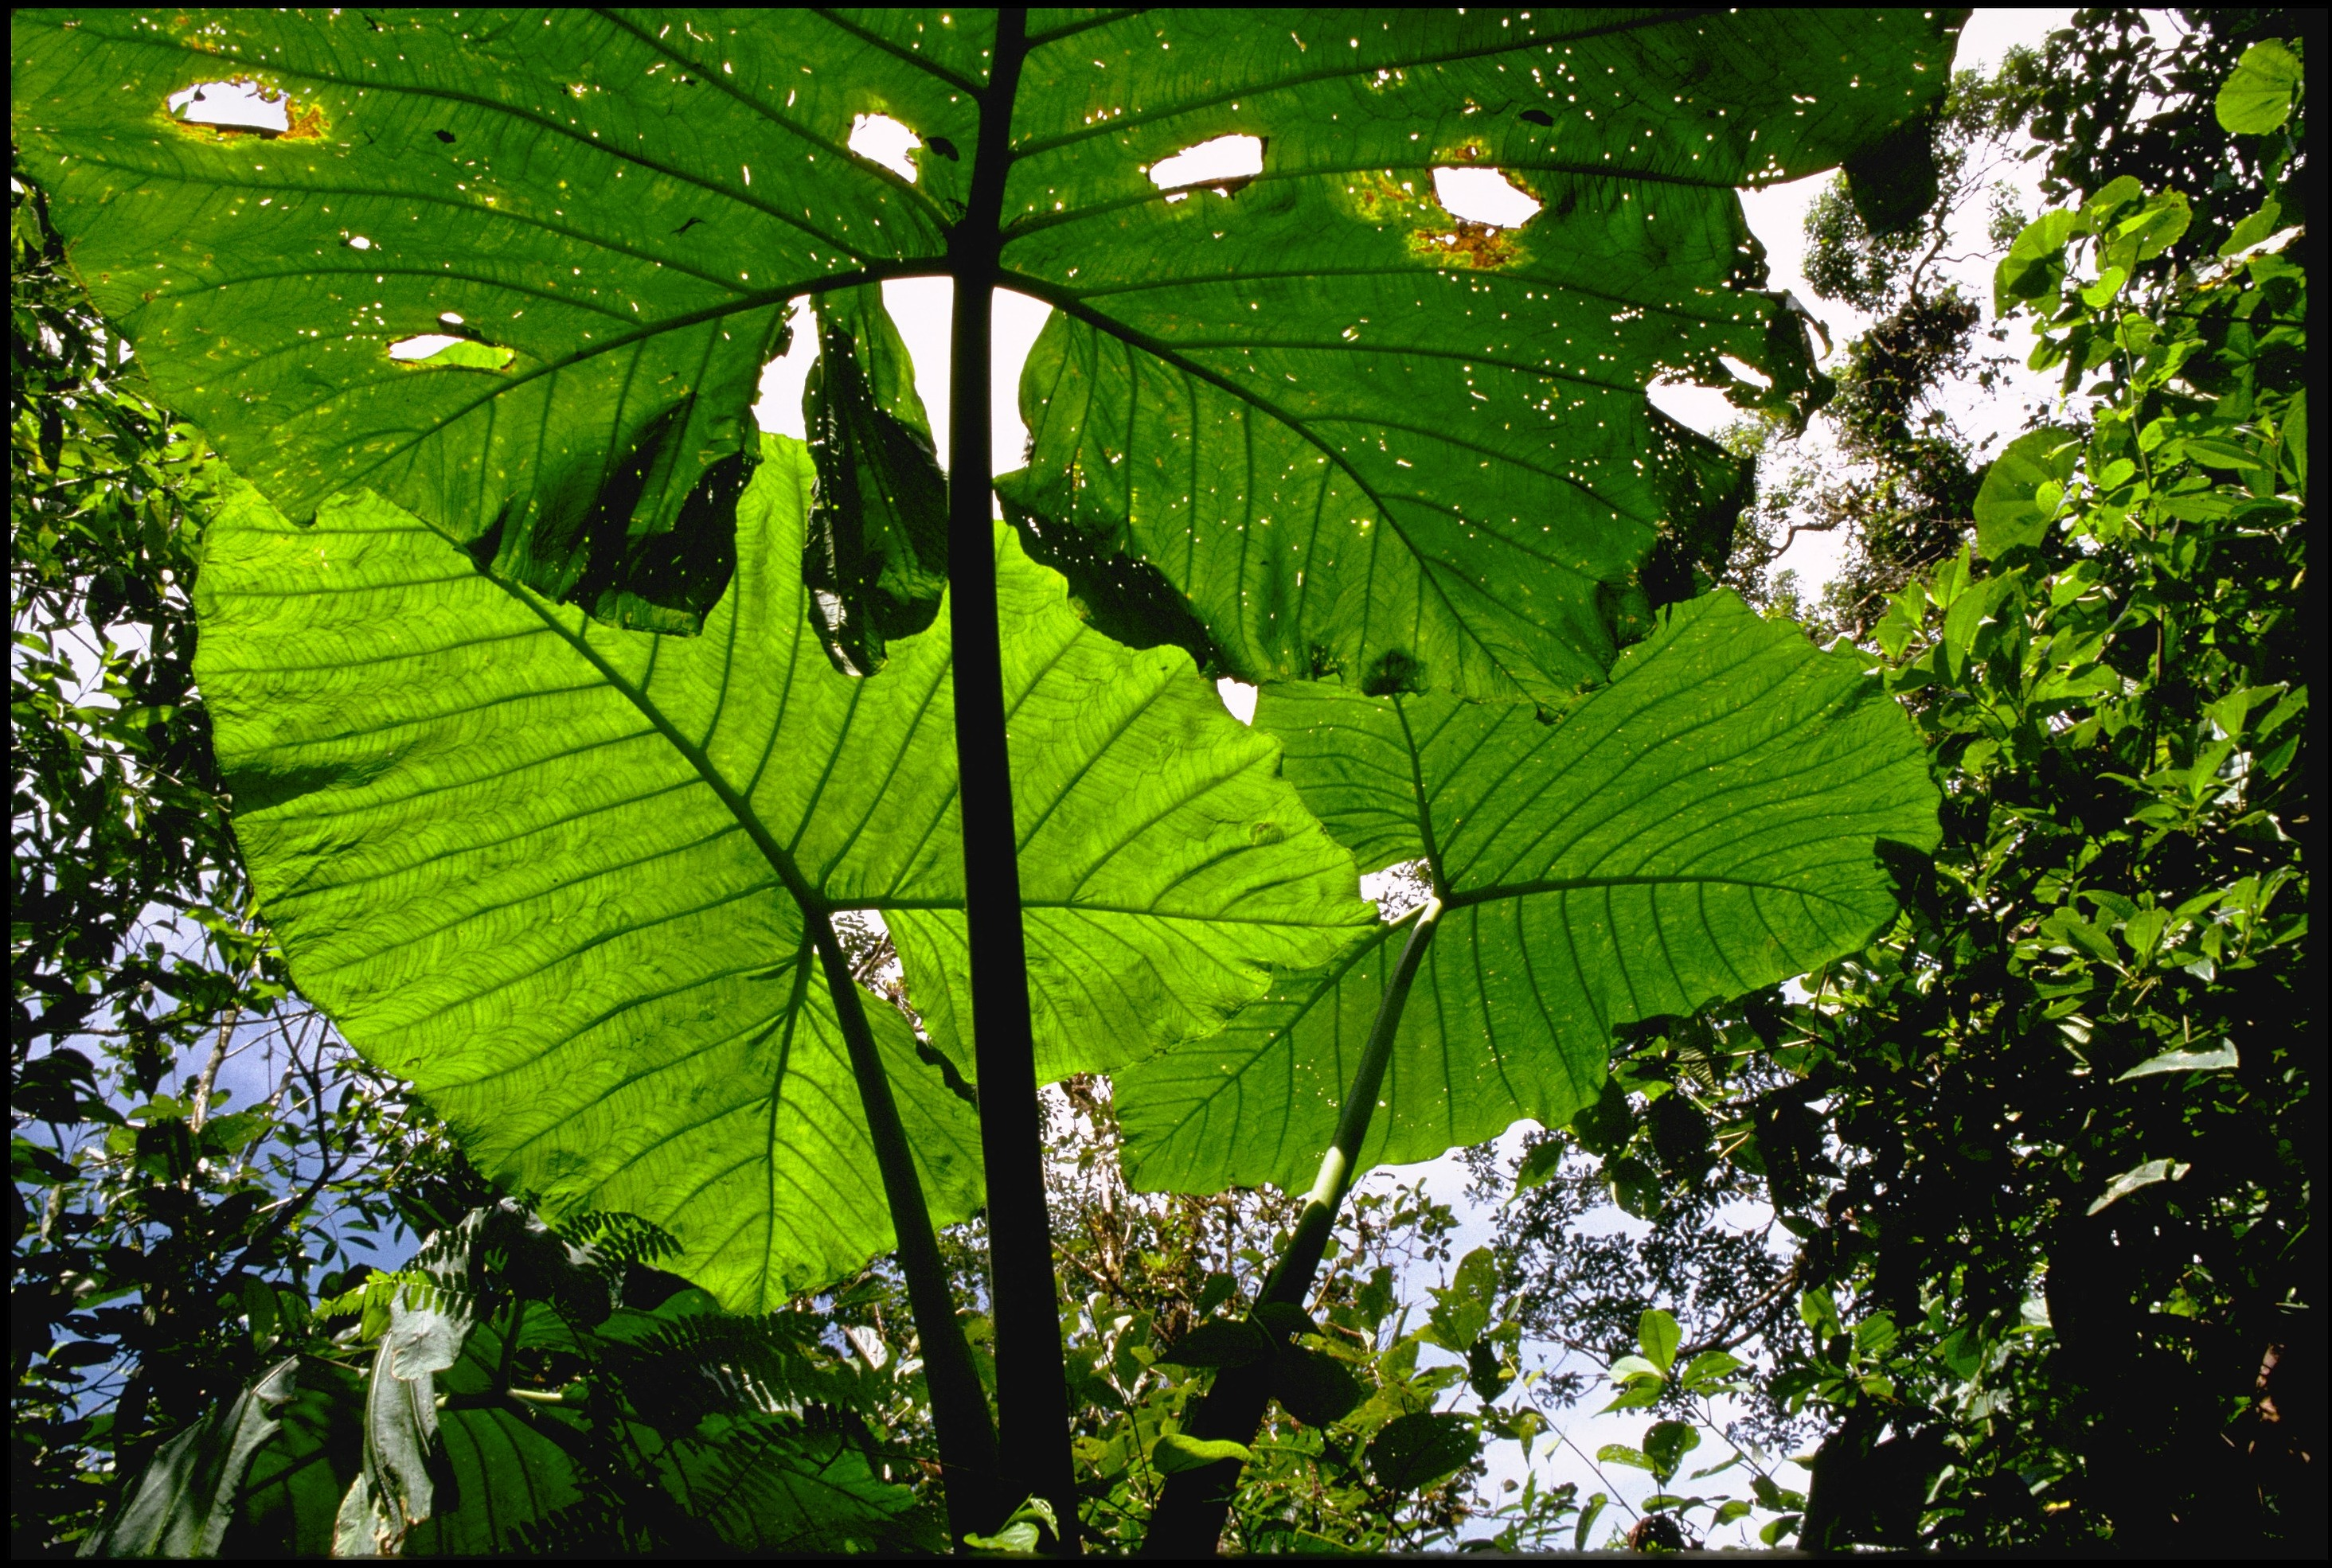 Light comes through three large, green leaves. Trees are visible in the background.